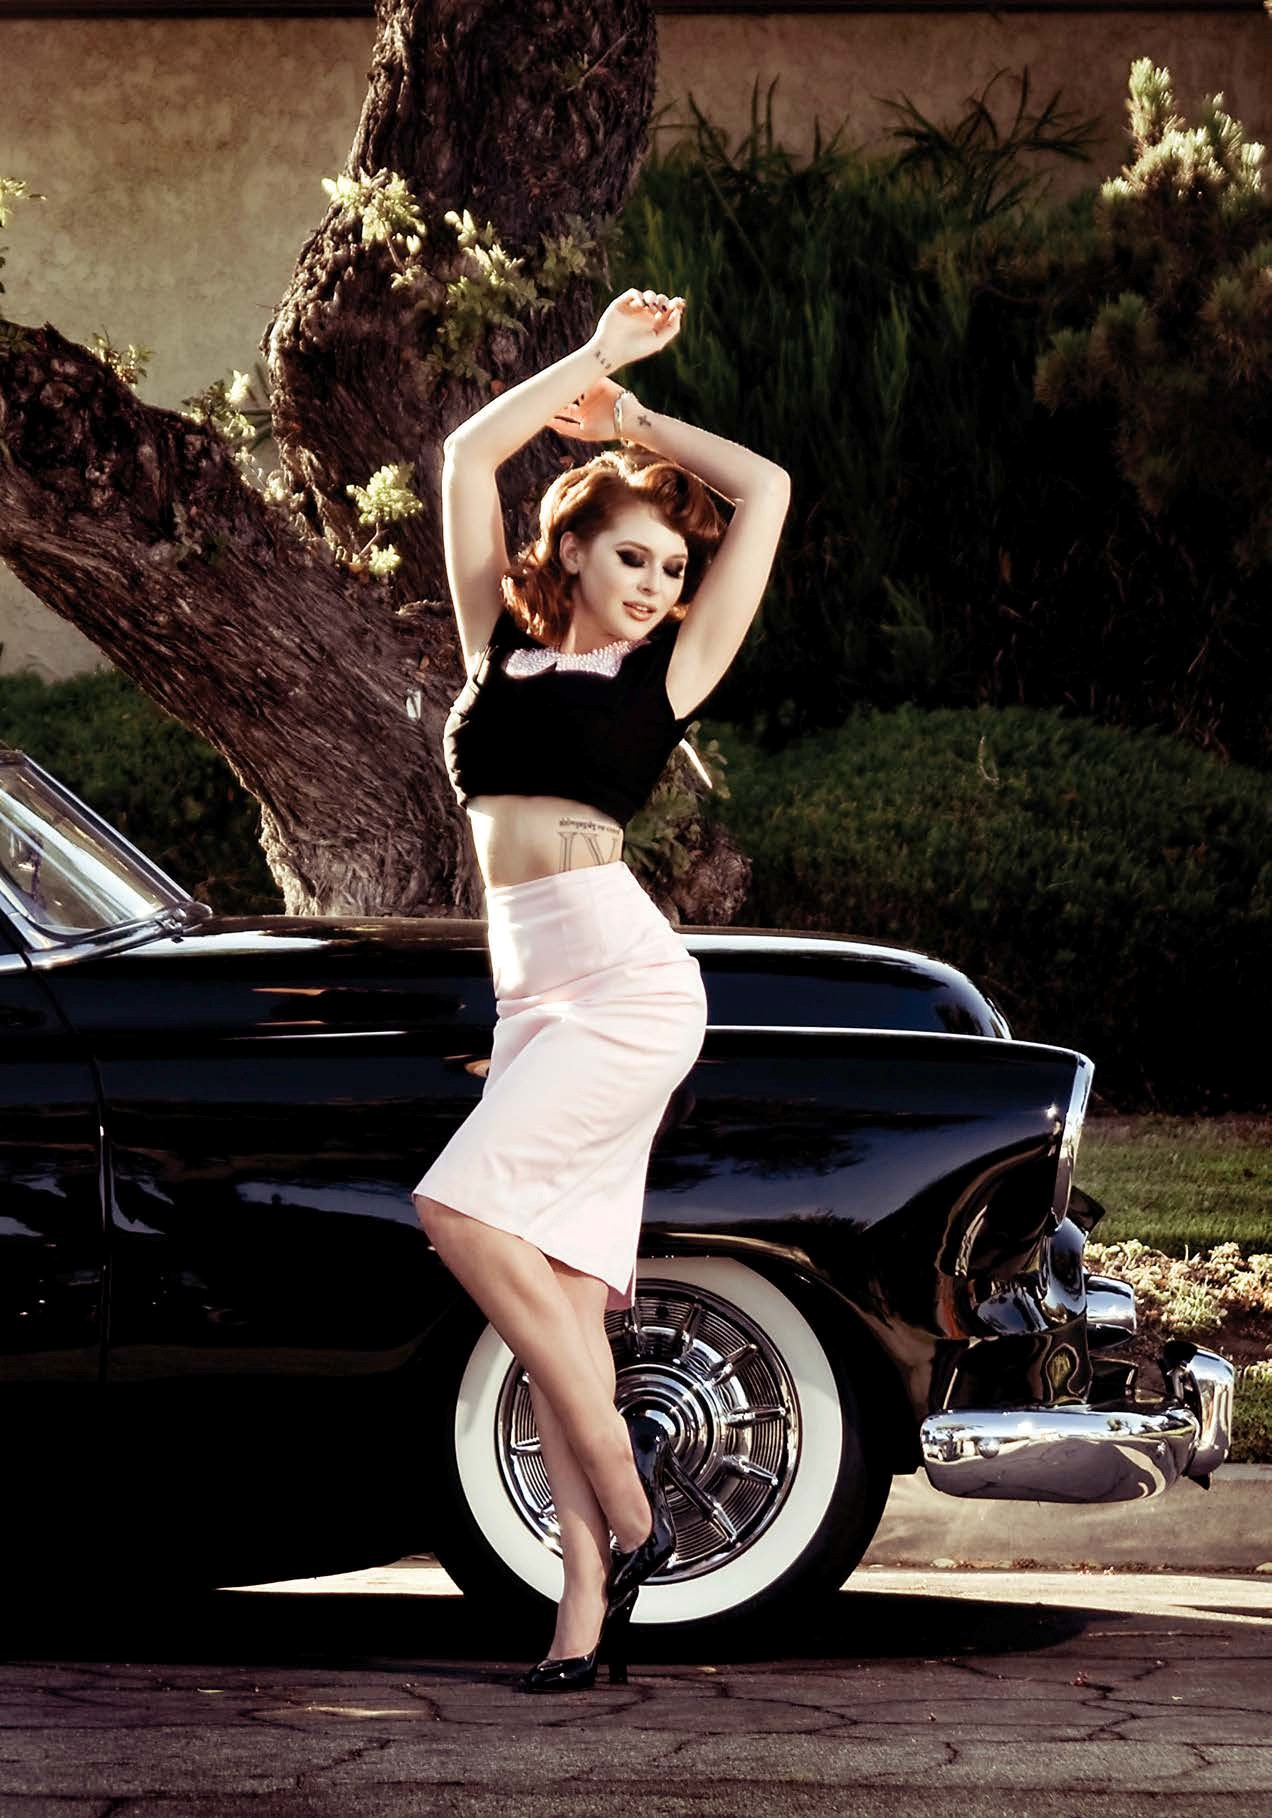 Corvette Girl Wallpaper Renee Olstead Is Gangsta Hot Next To A Chevy Deluxe